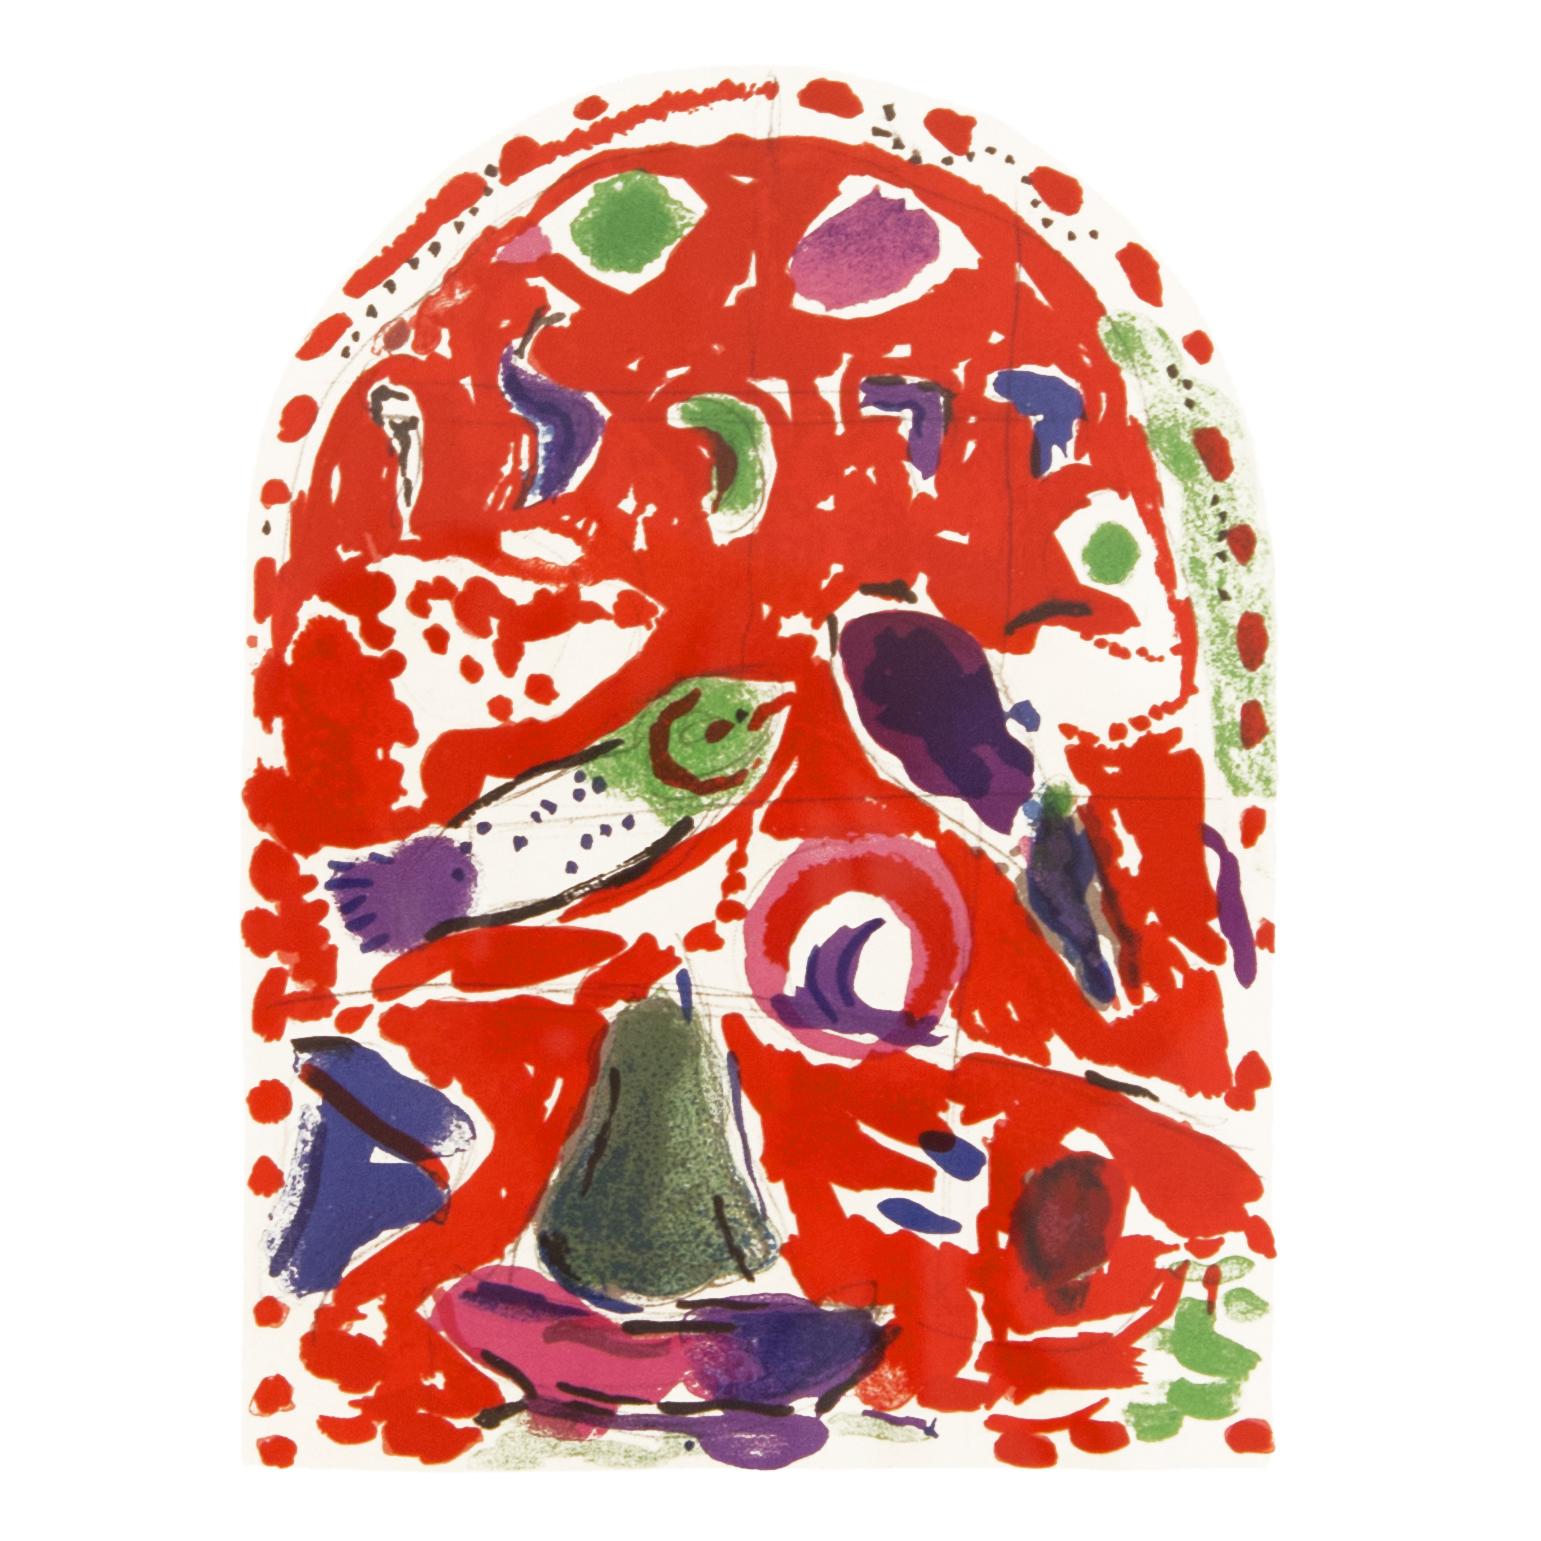 marc-chagall-tribe-of-zebulon-third-state-maquette-jerusalem-windows-1962-art-group-projects-unframed.jpg